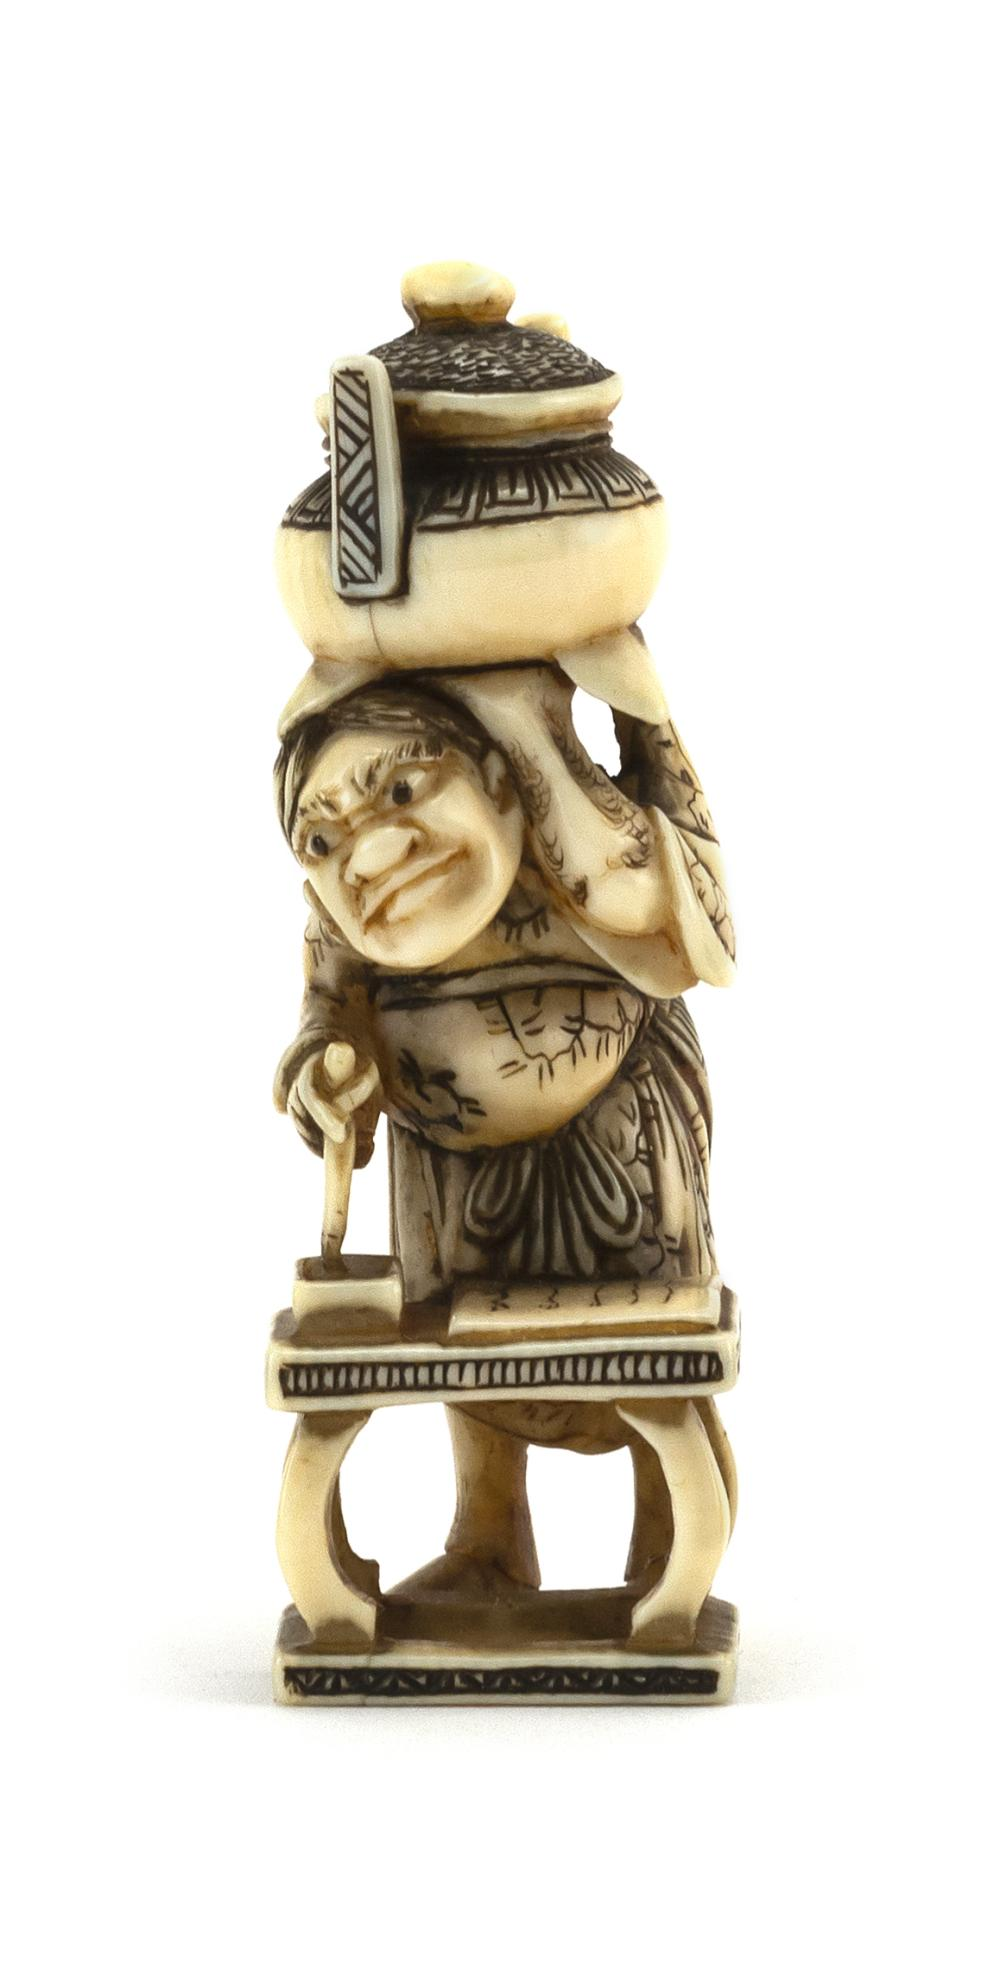 """JAPANESE IVORY NETSUKE In the form of a scholar holding an inkpot on his shoulder. Signed. Height 2.5"""". Not available for internatio..."""